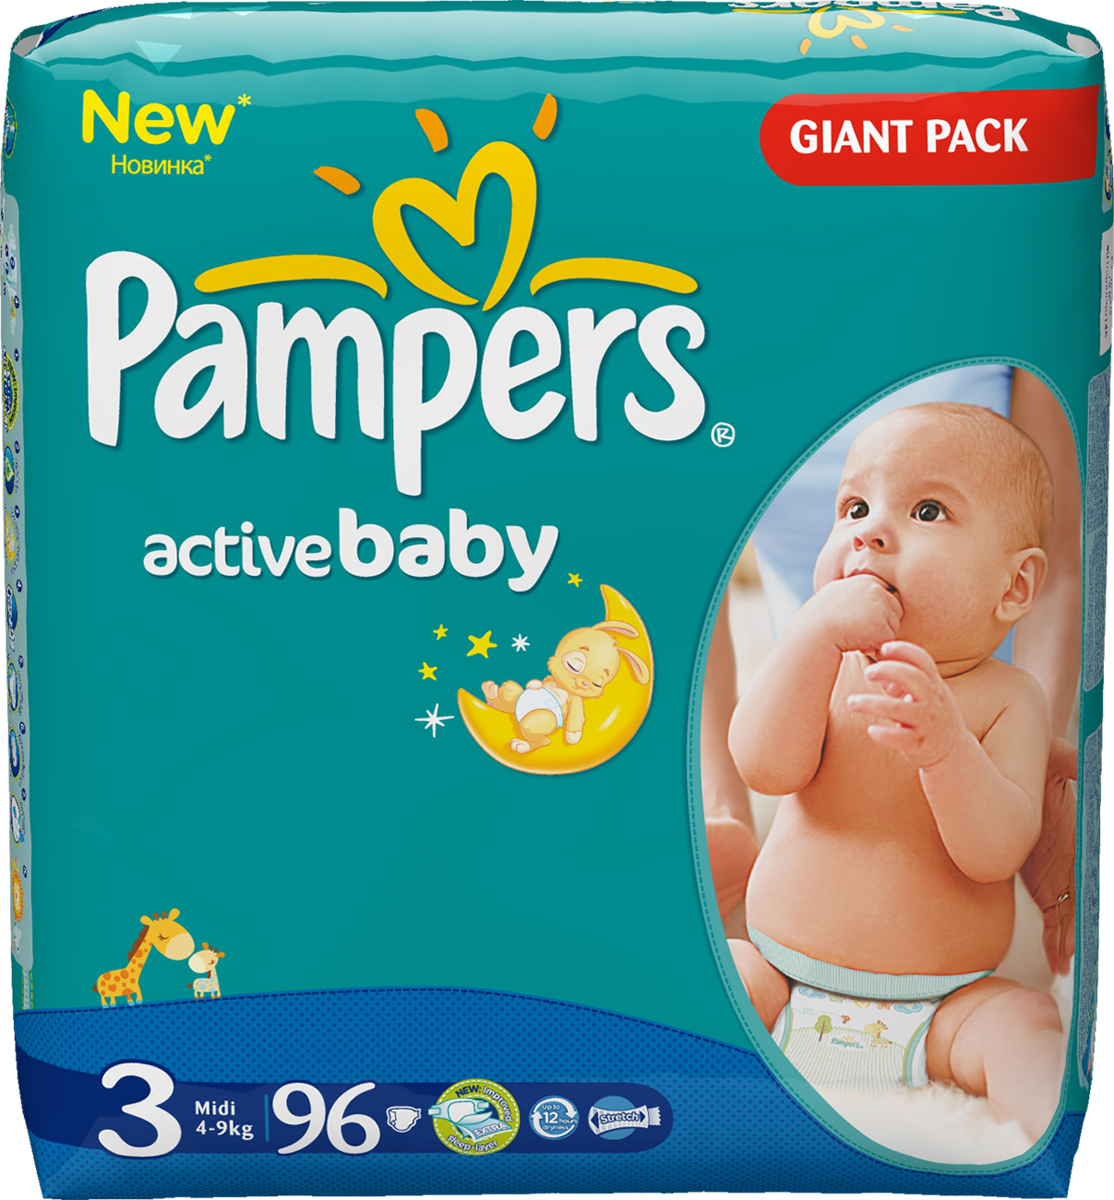 Active Baby 3 Midi Giant Pack (96шт) 21vek.by 329000.000